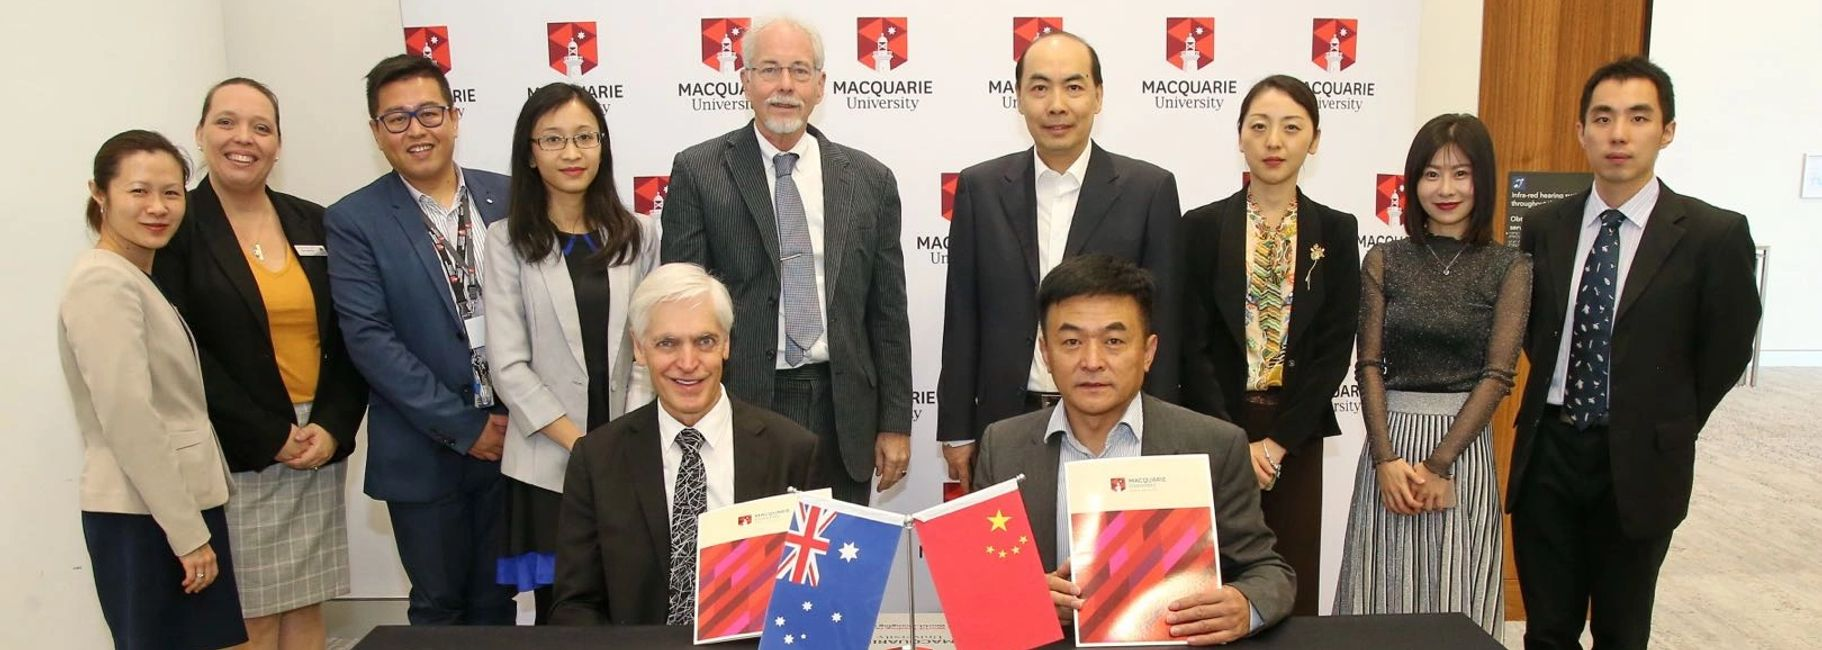 BGI Research and Macquarie University Deepen Cooperation in Synthetic Biology